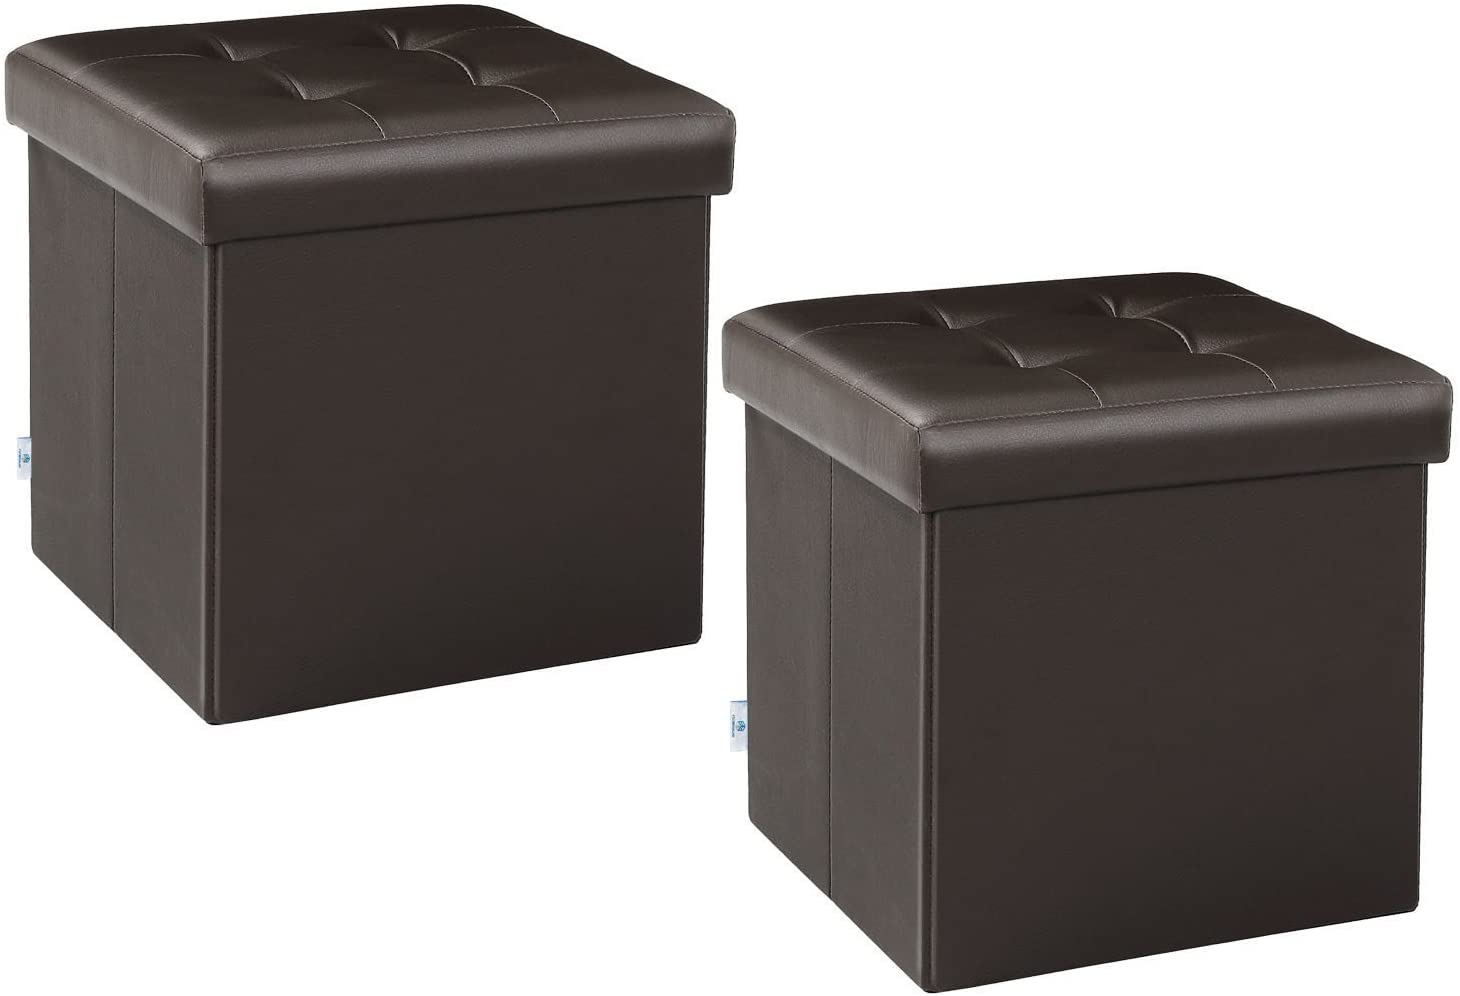 """B FSOBEIIALEO Storage Ottoman Small Cube Footrest Stool Seat Faux Leather Toy Chest Brown 12.6""""X12.6""""X12.6"""" (2 Pack)"""